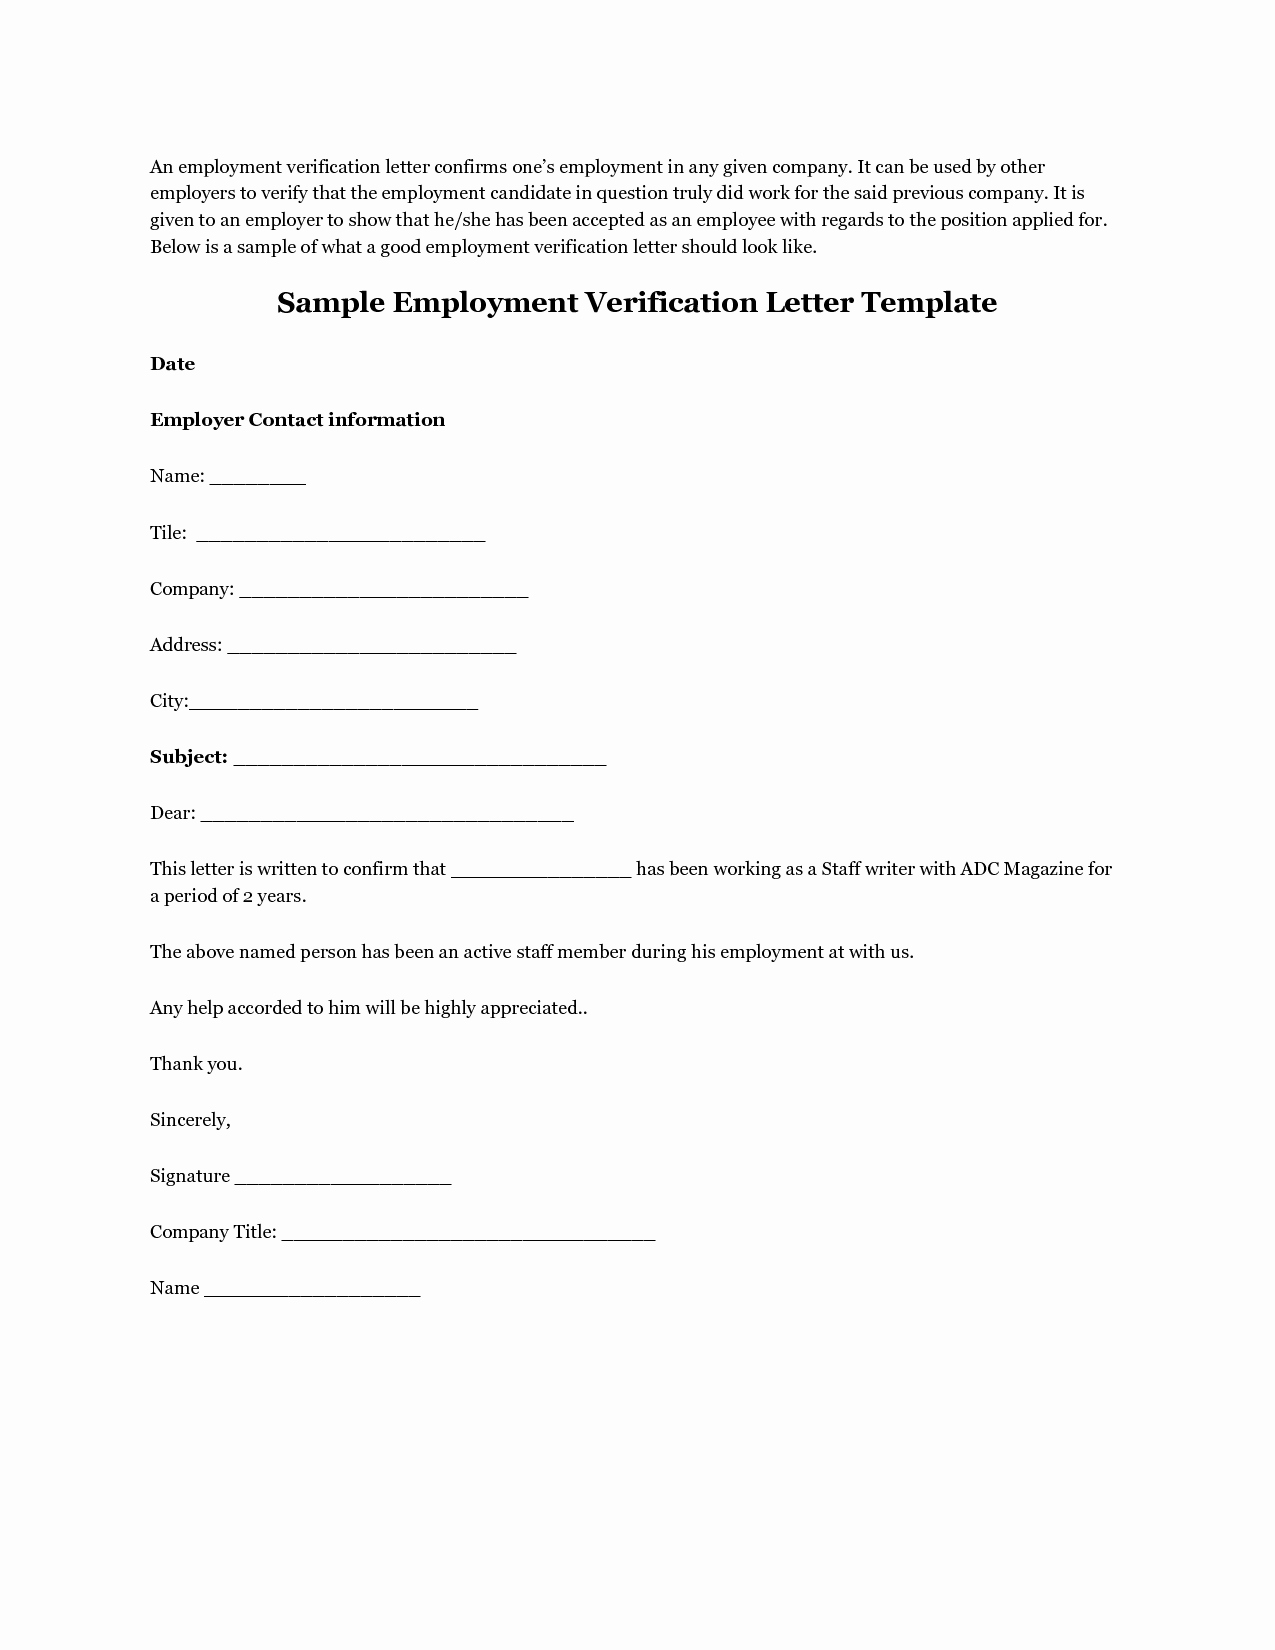 Previous Employment Verification form Template Luxury Employment Verification Letter Template Bbq Grill Recipes